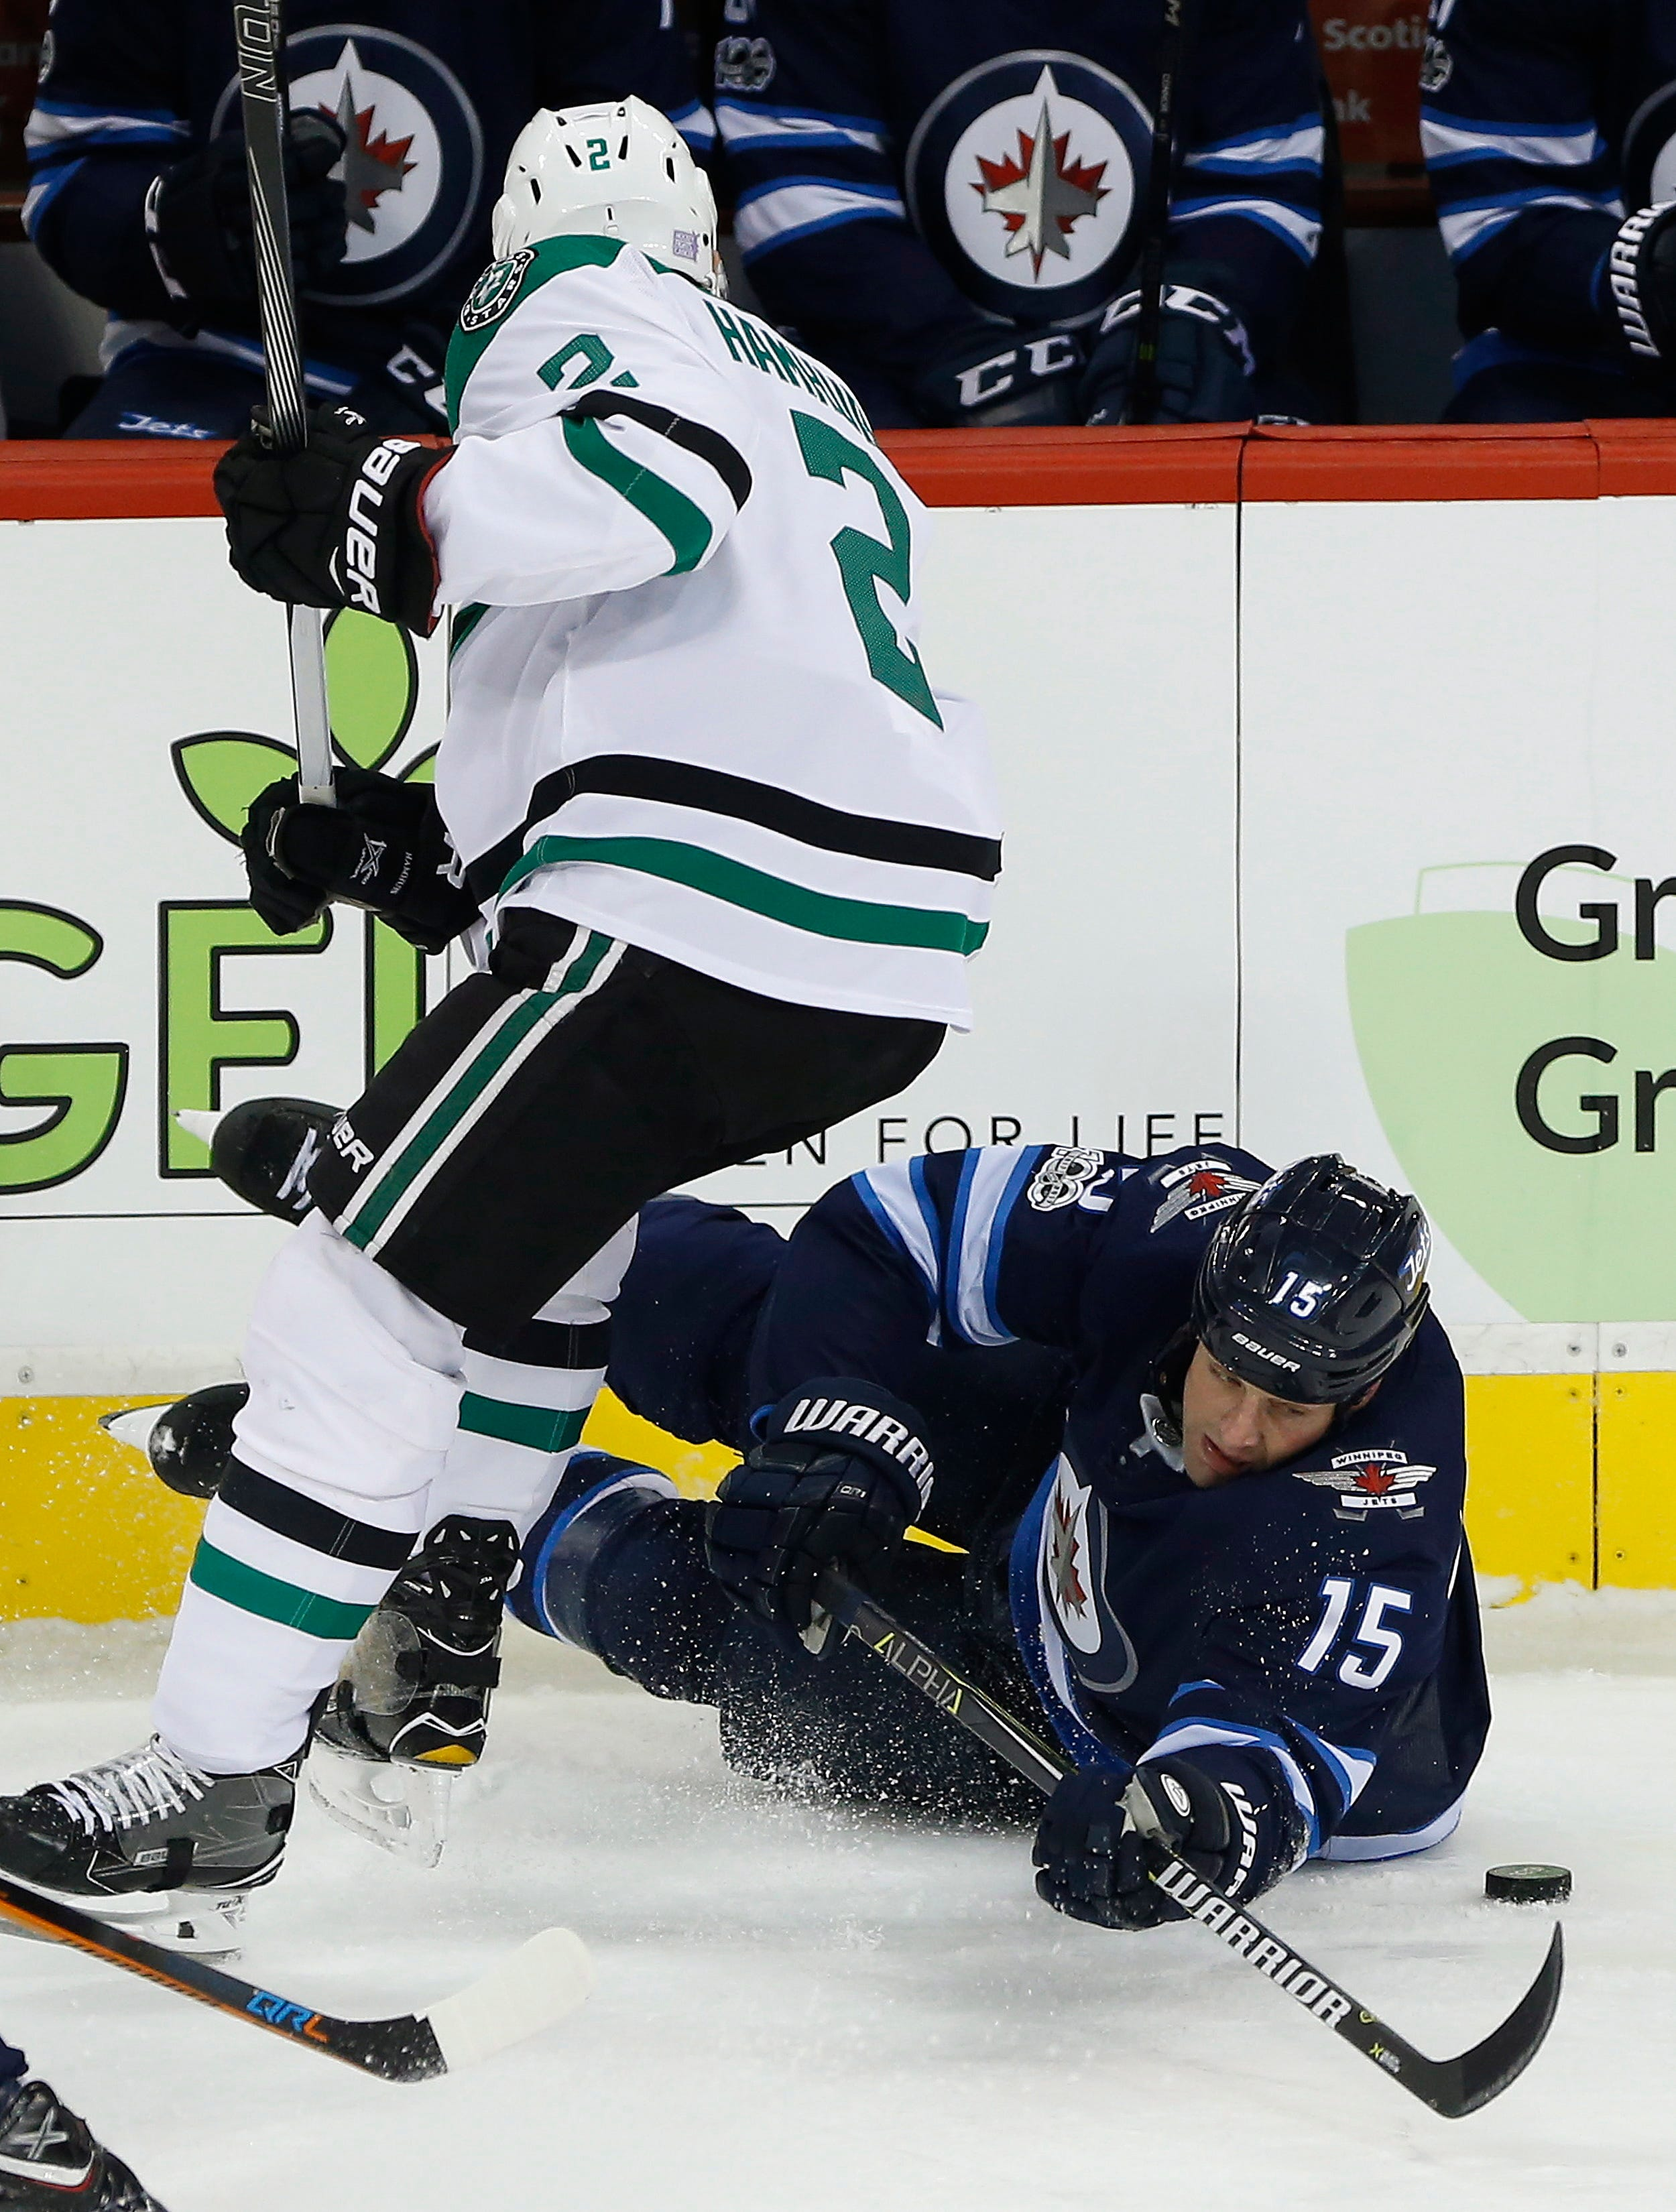 Mark Scheifele has hat trick, Jets beat Stars 5-2